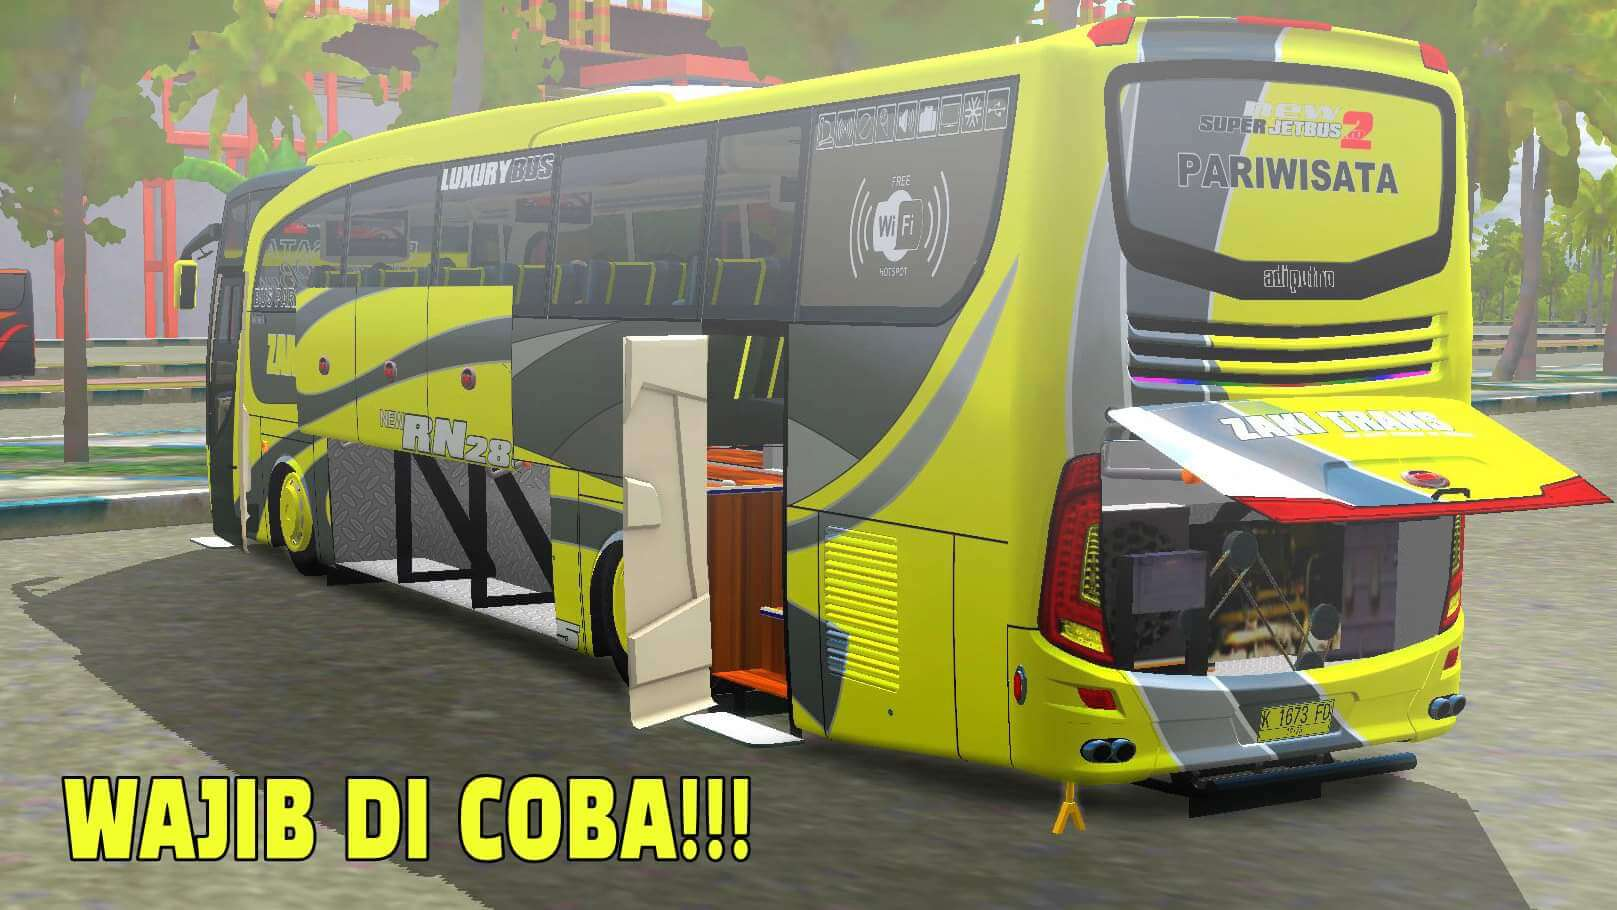 Download JetBus HD 2 Mod for Bus Simulator Indonesia, JetBus HD 2, ALDOVADEWA, Bus Simulator Indonesia Mod, BUSSID mod, JetBus HD 2, JetBus HD 2 Bus Mod, JetBus HD 2 Bus Mod for bussid, JetBus HD 2 Mod, JetBus HD 2 Mod for BUSSID, JetBus HD 2 Temple, SGCArena, ZTOM